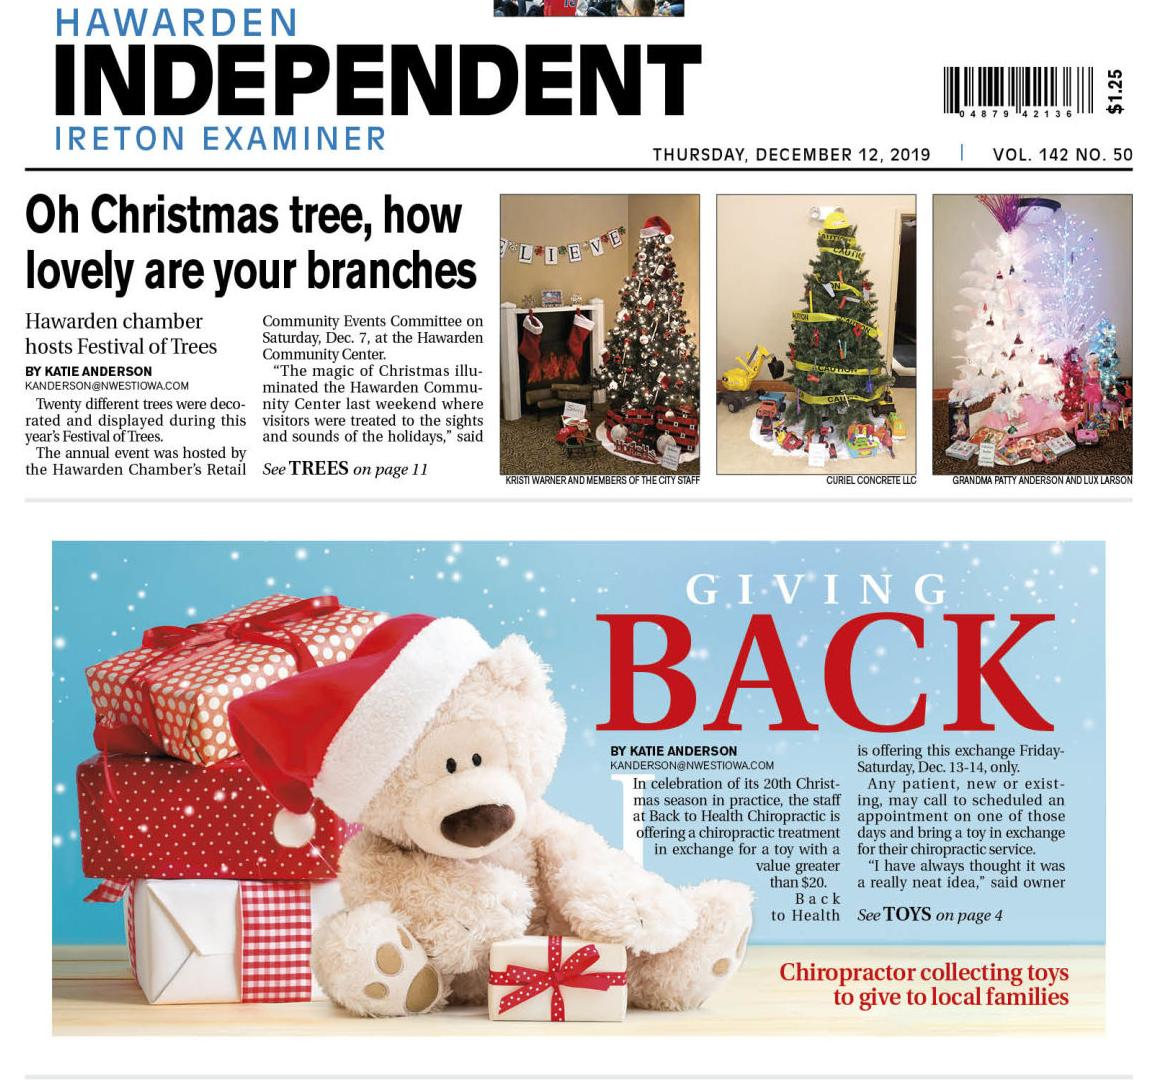 Hawarden Independent/Ireton Examiner Dec. 12, 2019